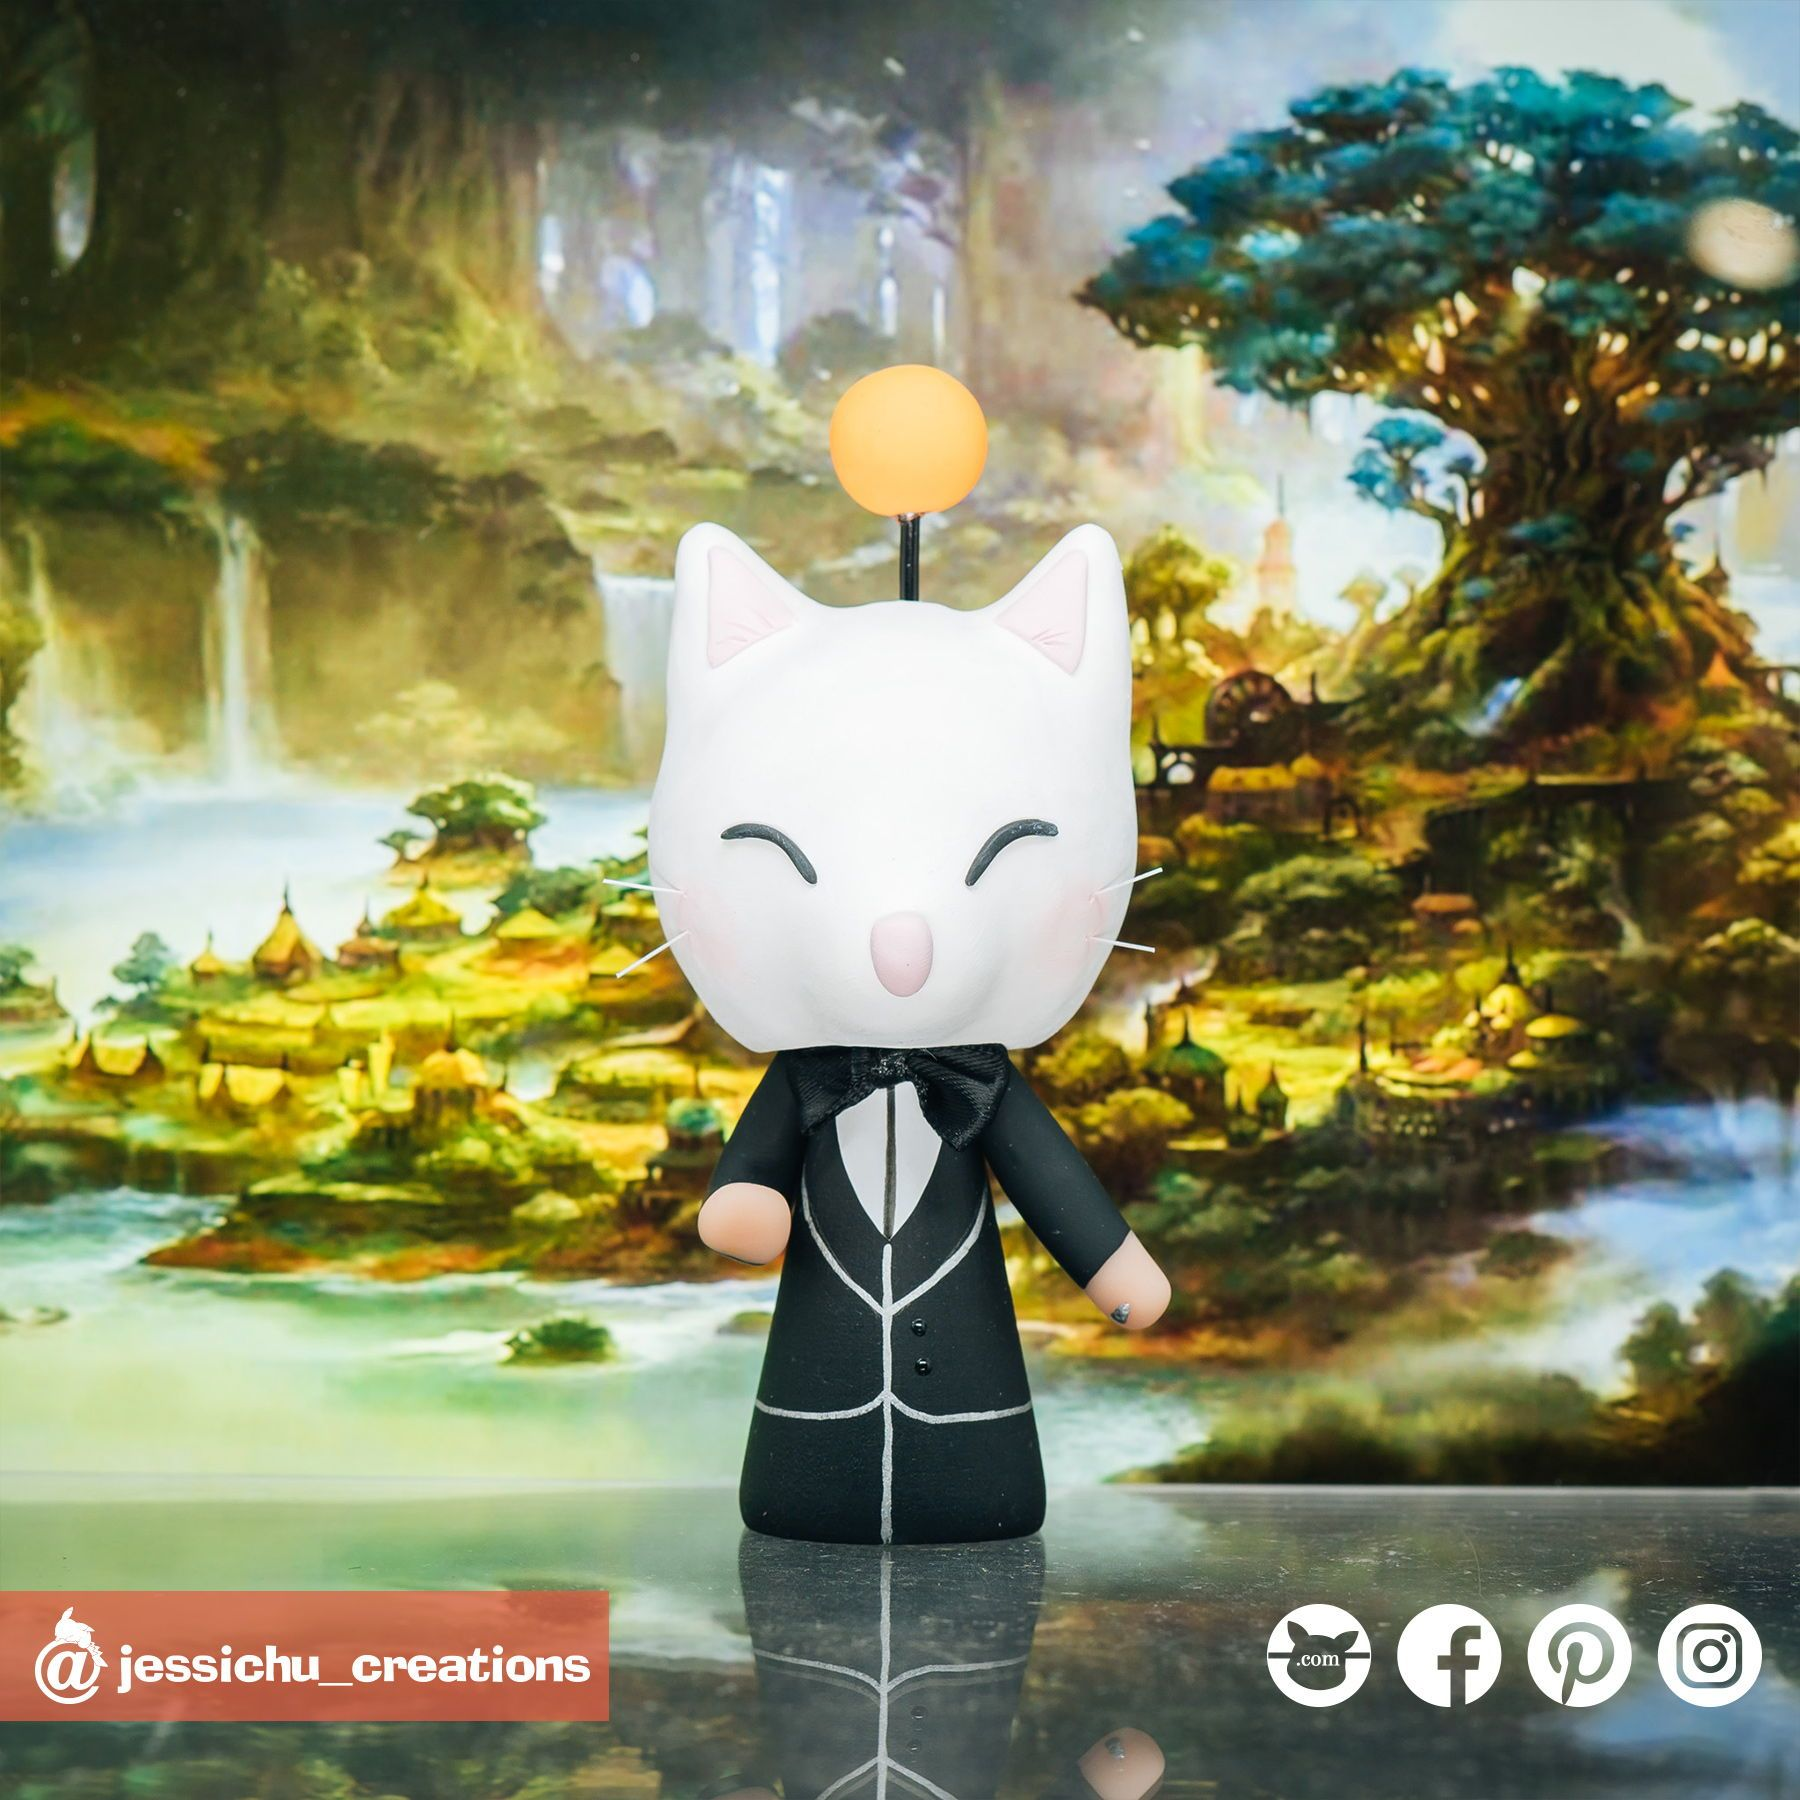 Final Fantasy XIV Miqo'te | Custom Handmade Wedding Cake Topper Figurines | Jessichu Creations   #FinalFantasyXIV #Miqo'te #finalfantasy  #VideoGameWedding #instagamer #gamerboy #gamergirl #gameon #lastgame #foundmyplayer2 #gamelovers #gamerswedding #dontgoplayingwithmyheart  #WeddingInspiration #WeddingCakeTopper #CakeTopper  #CustomCreations #WeddingCake #GeekWedding #GeekLife #NerdLove #NerdAlert #Handmade #creationsmadeforlove